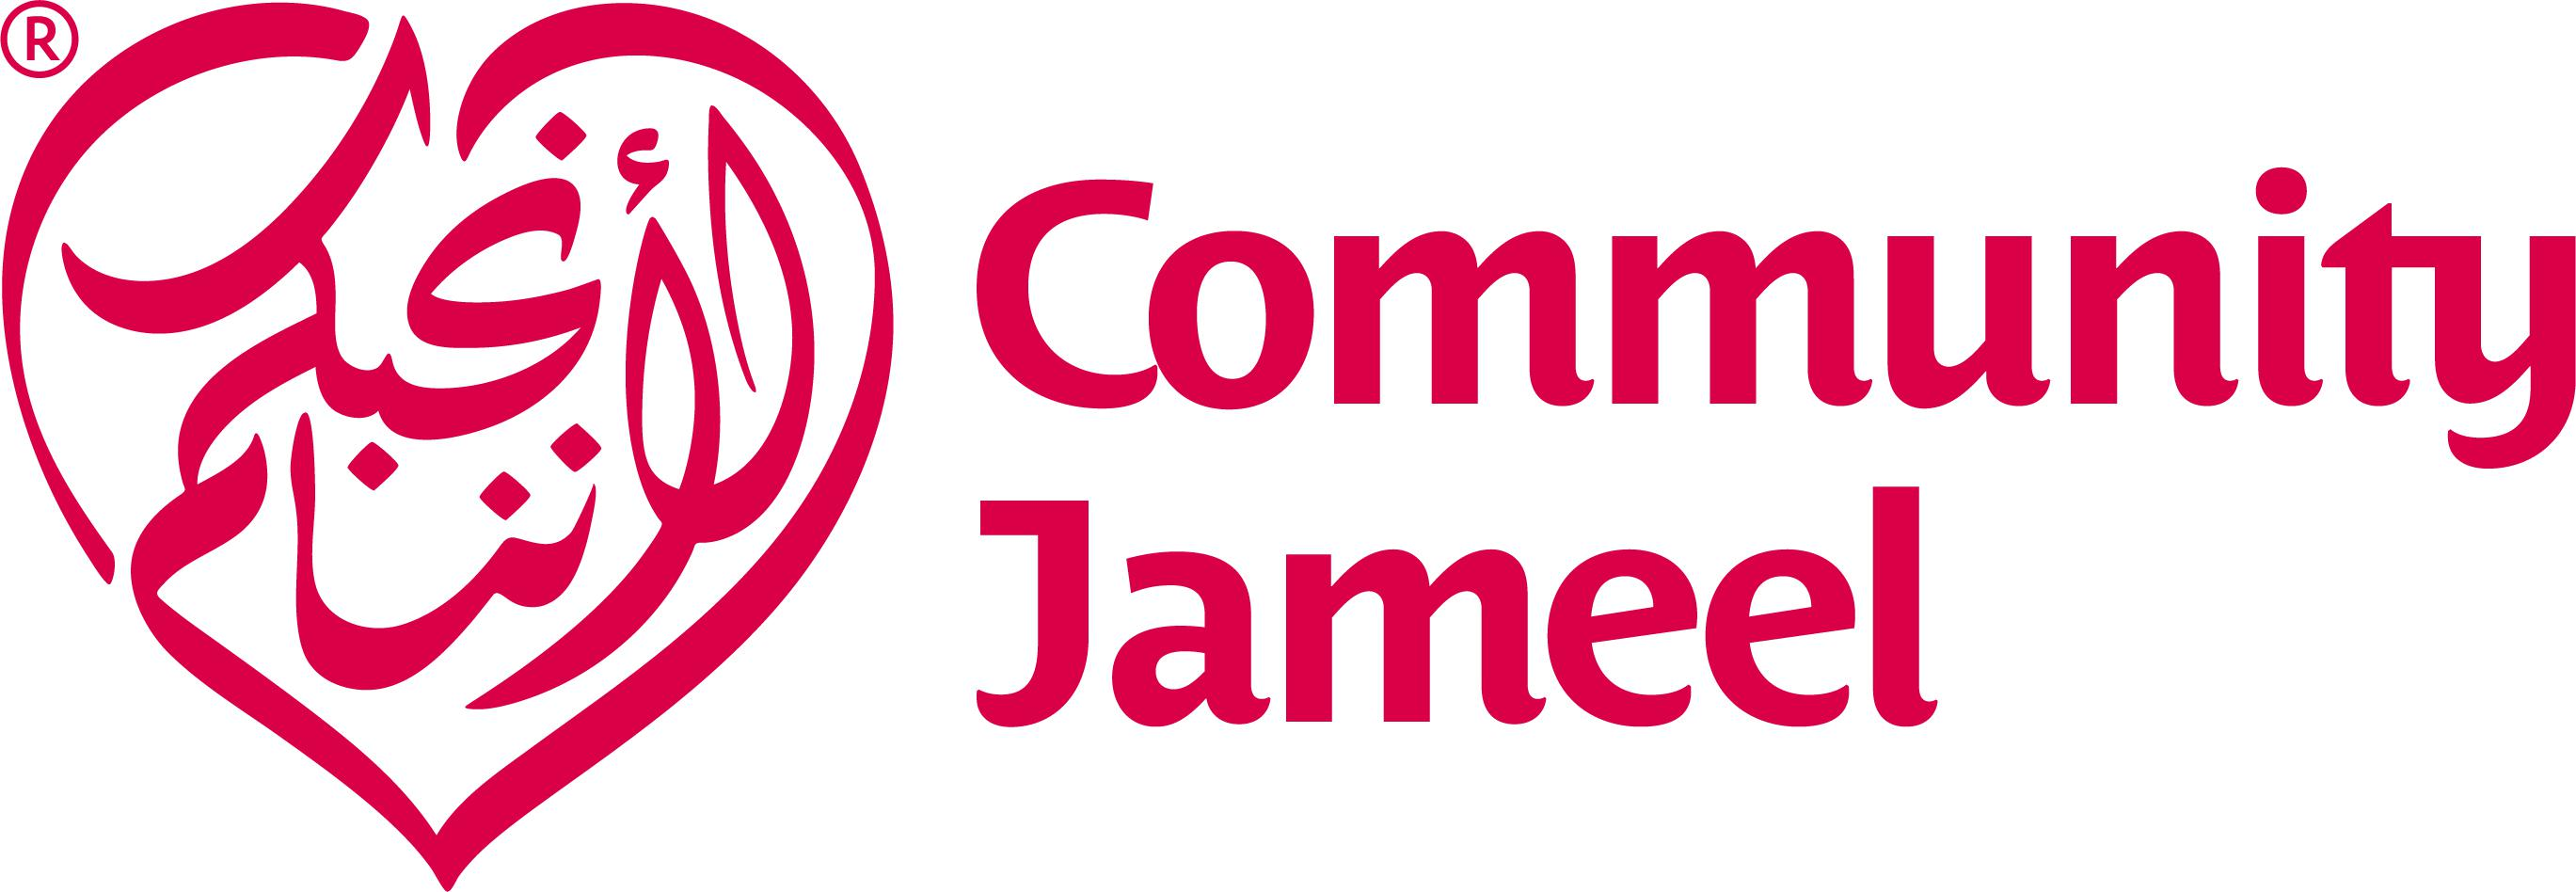 Community Jameel